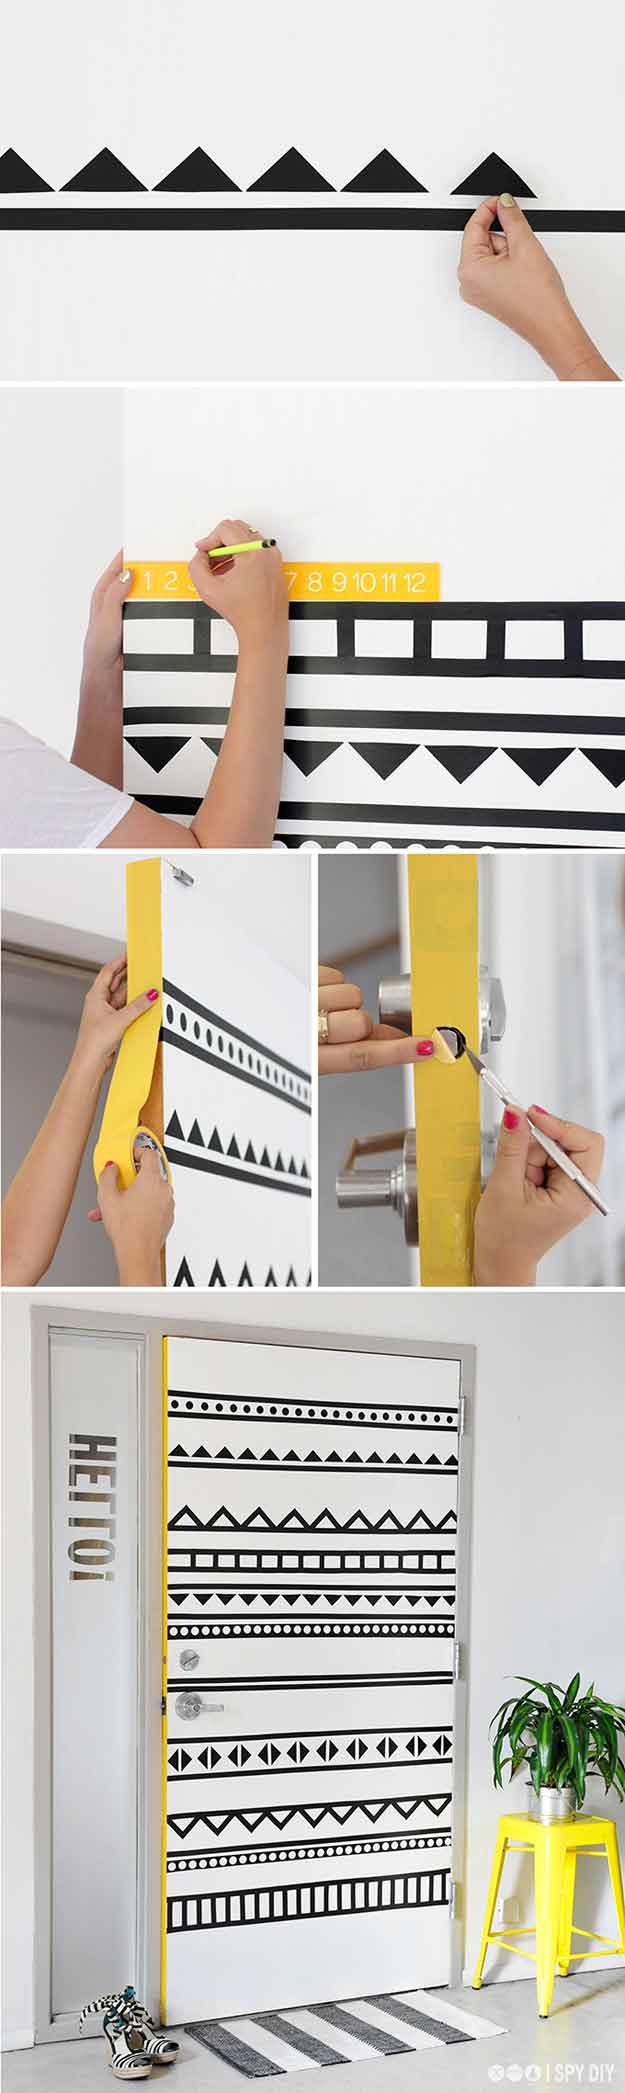 37 Insanely Cute Teen Bedroom Ideas For Diy Decor Diy Door Art